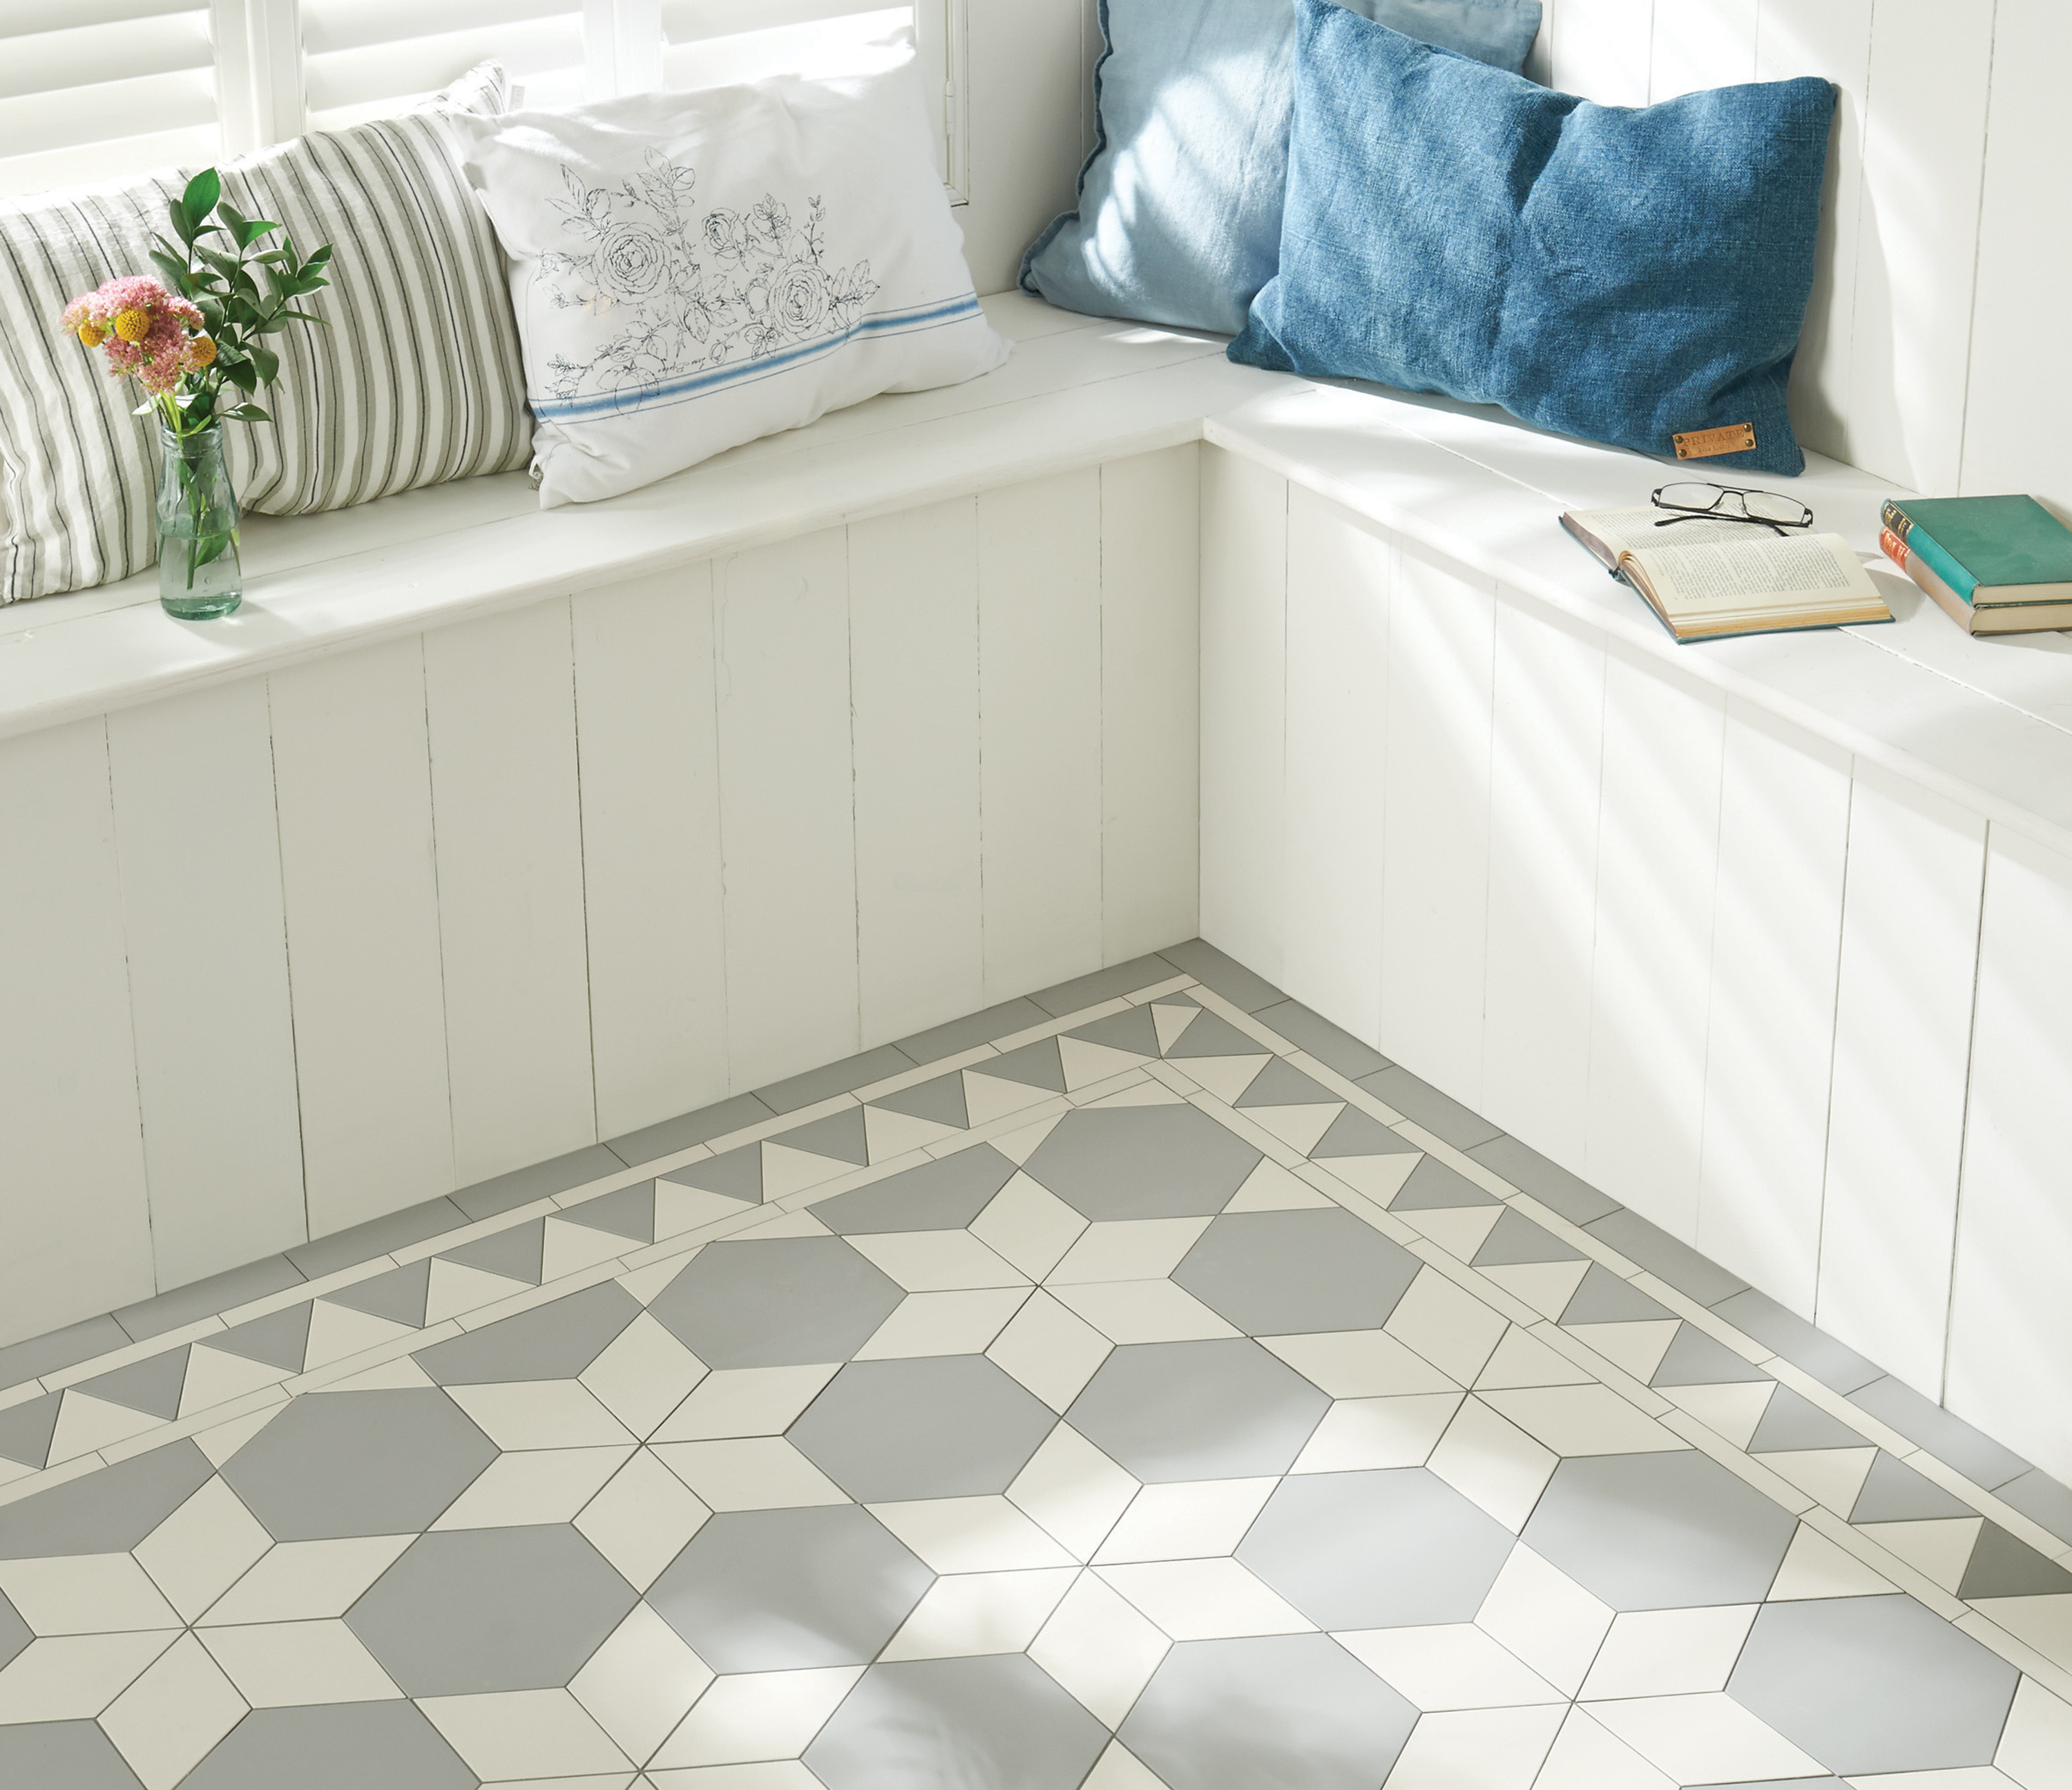 Os victorian ceramic tiles original style vft carlisle pattern with woolf border in grey and dover dailygadgetfo Images